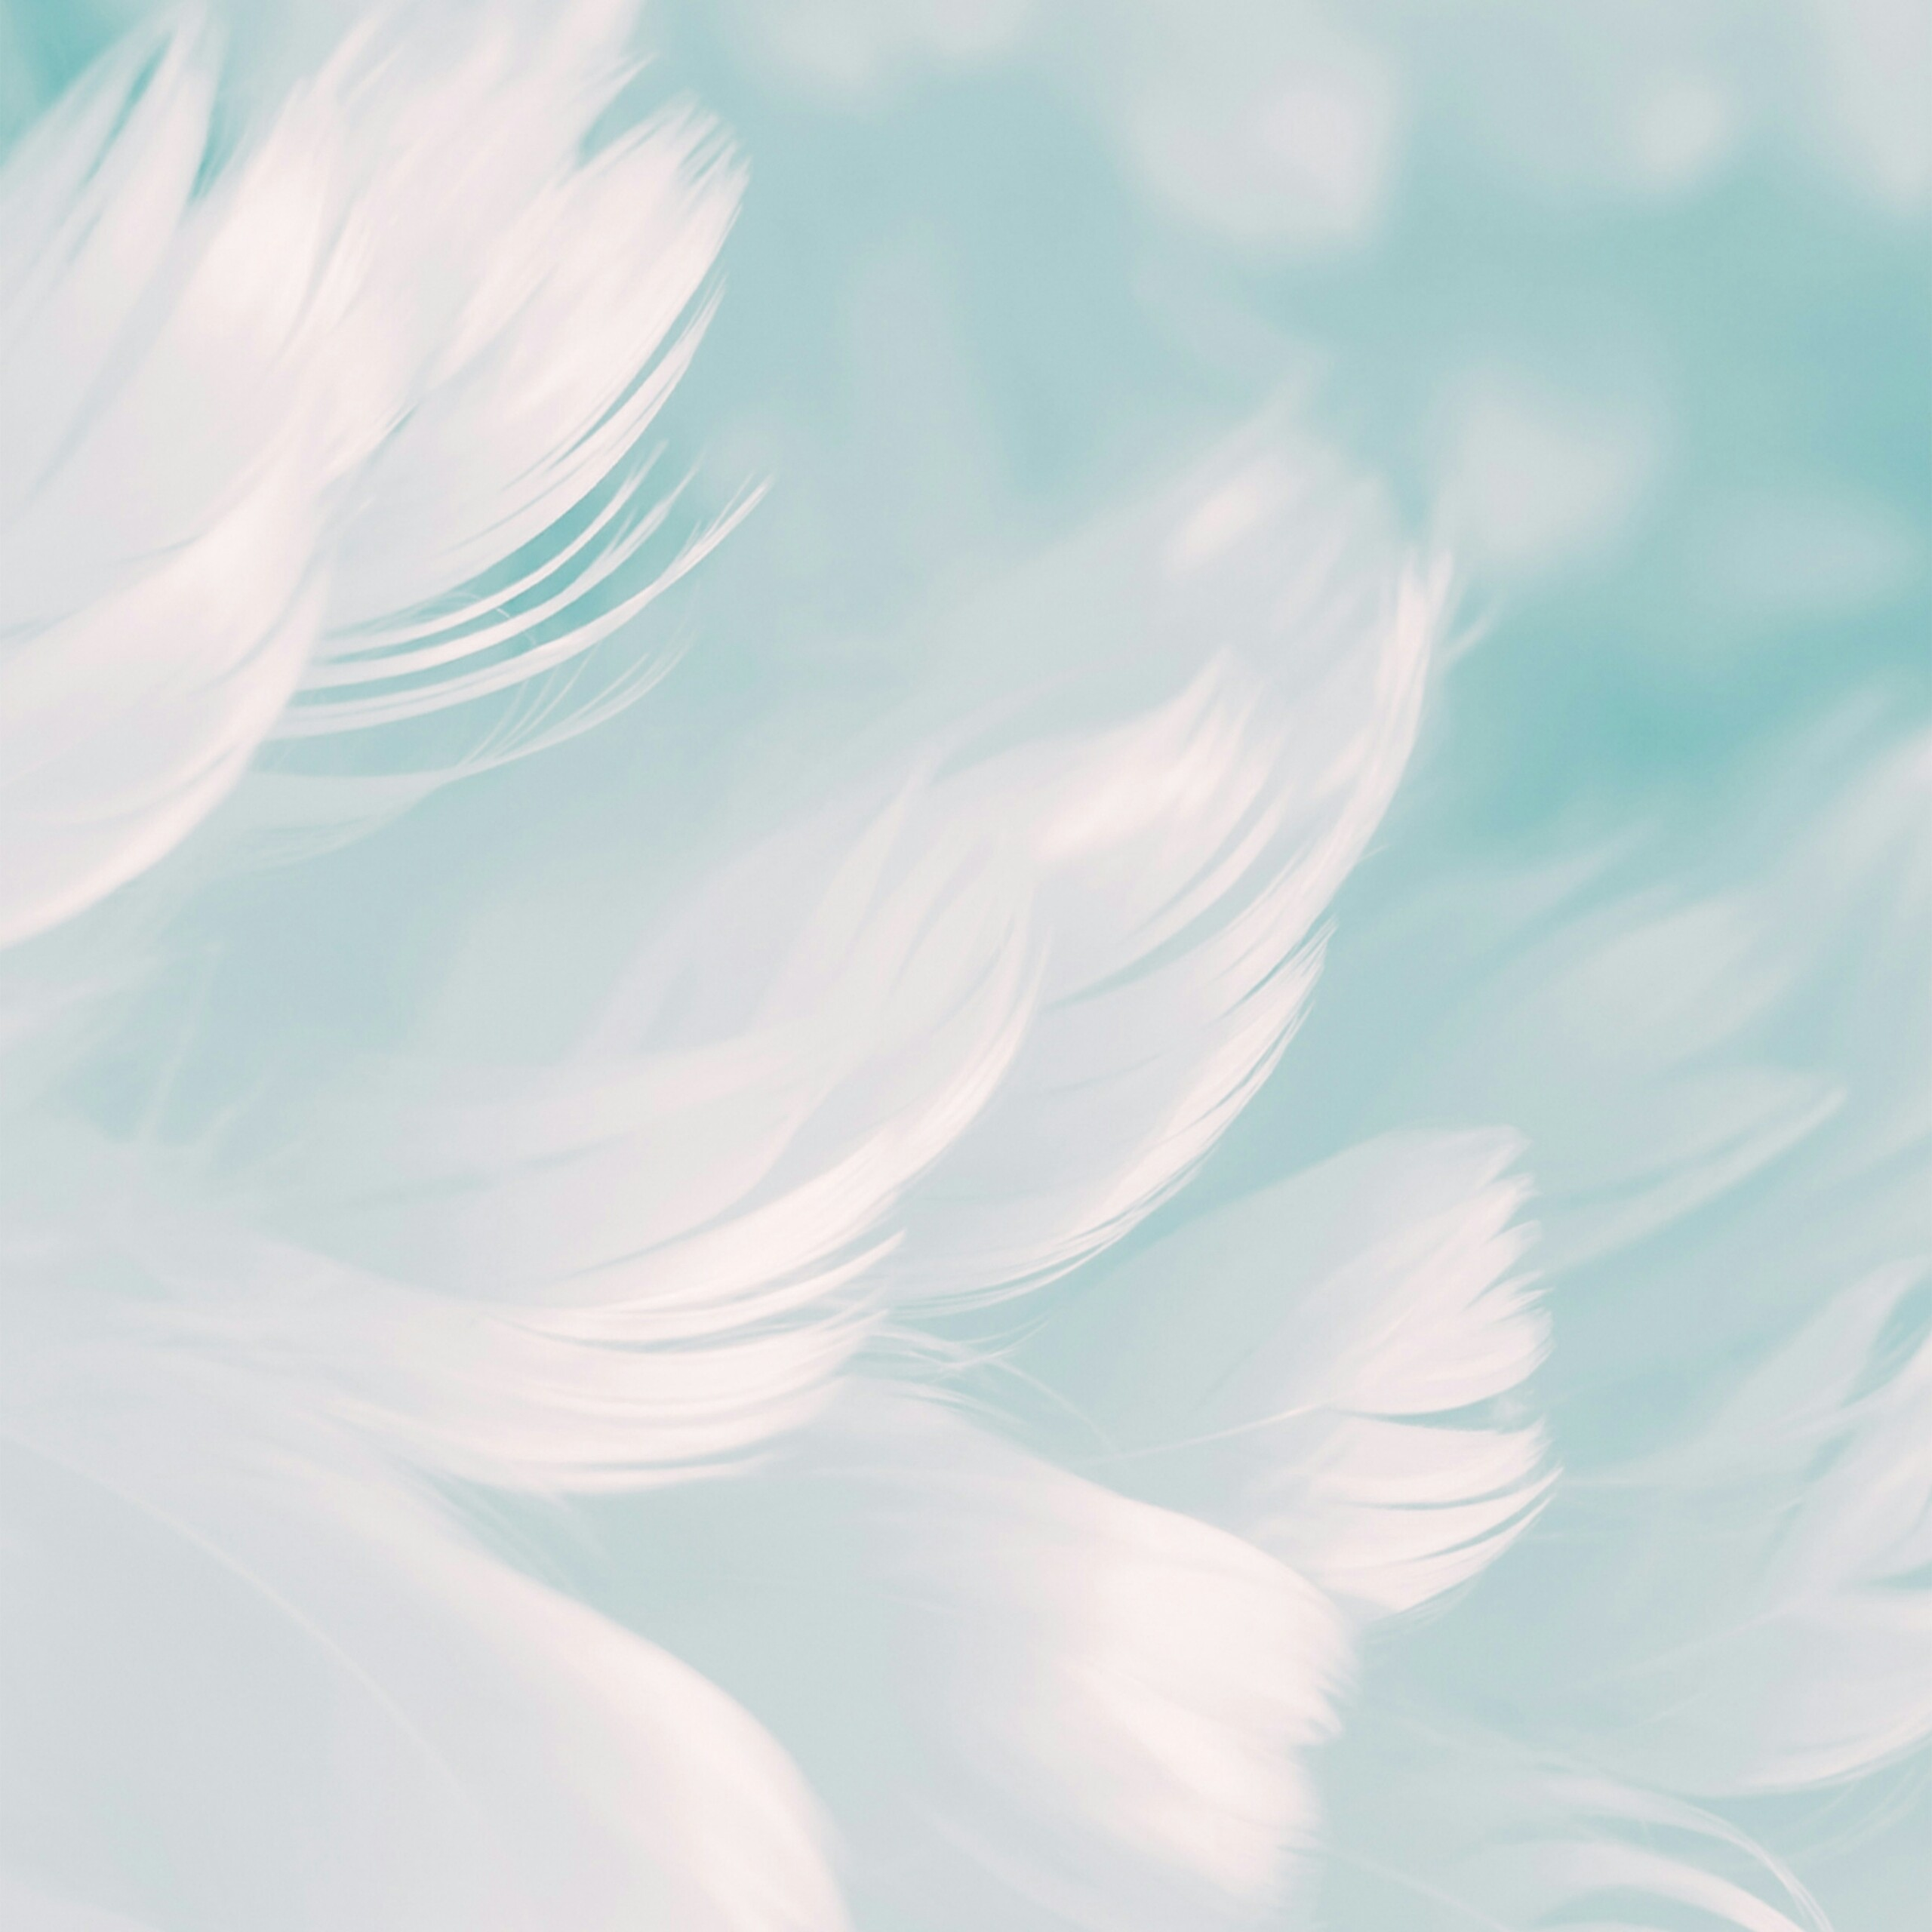 White Feathers Cool Simple Backgrounds Abstract QHD Free